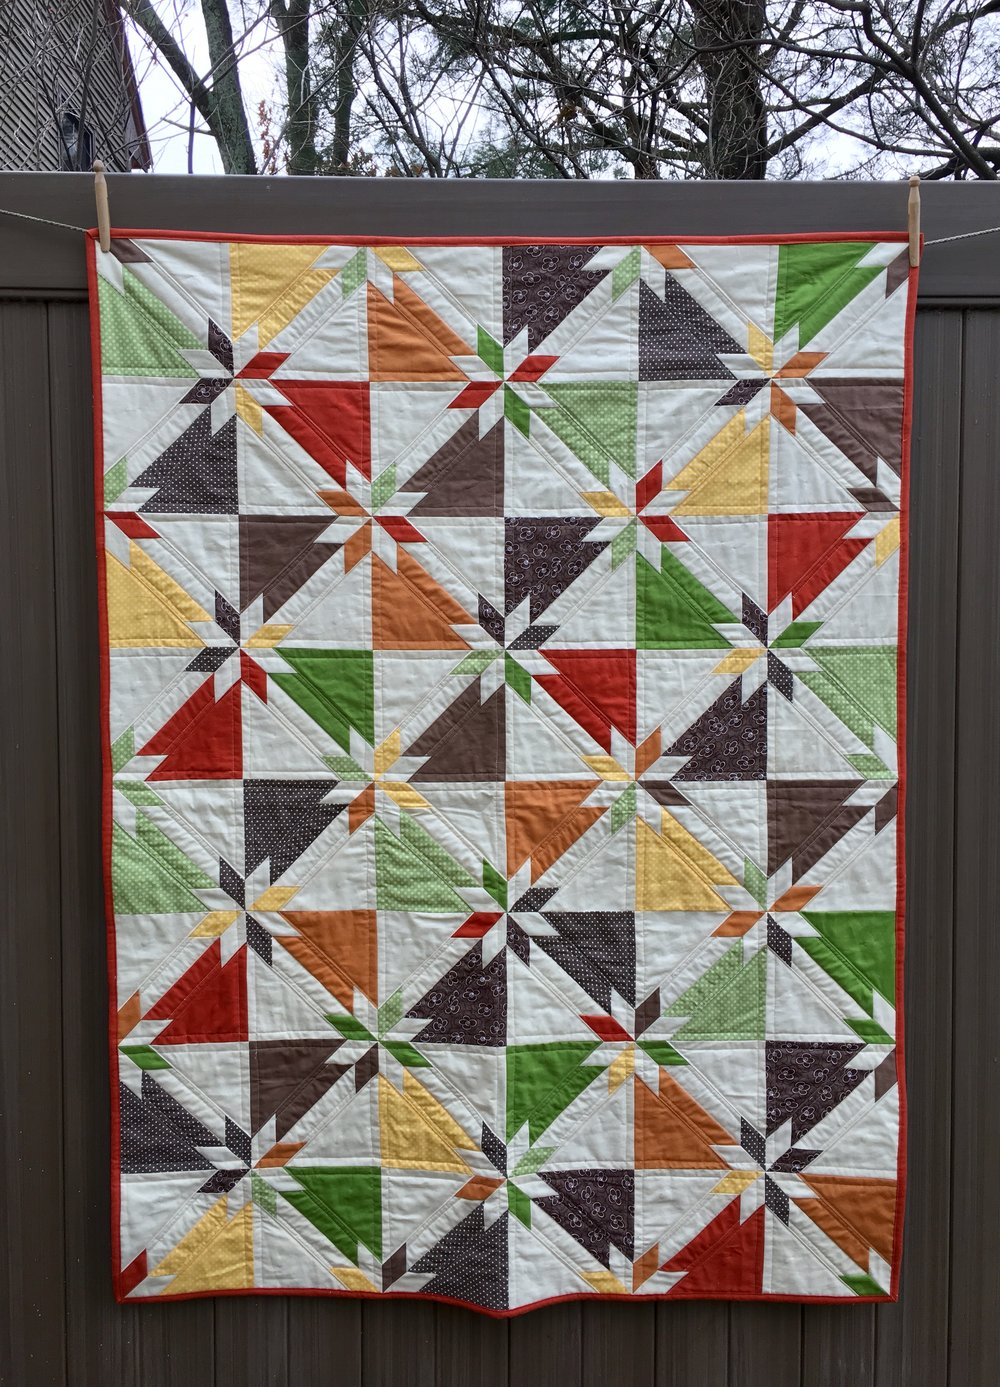 Autumn Hunter's Star Quilt 43 x 57 inches